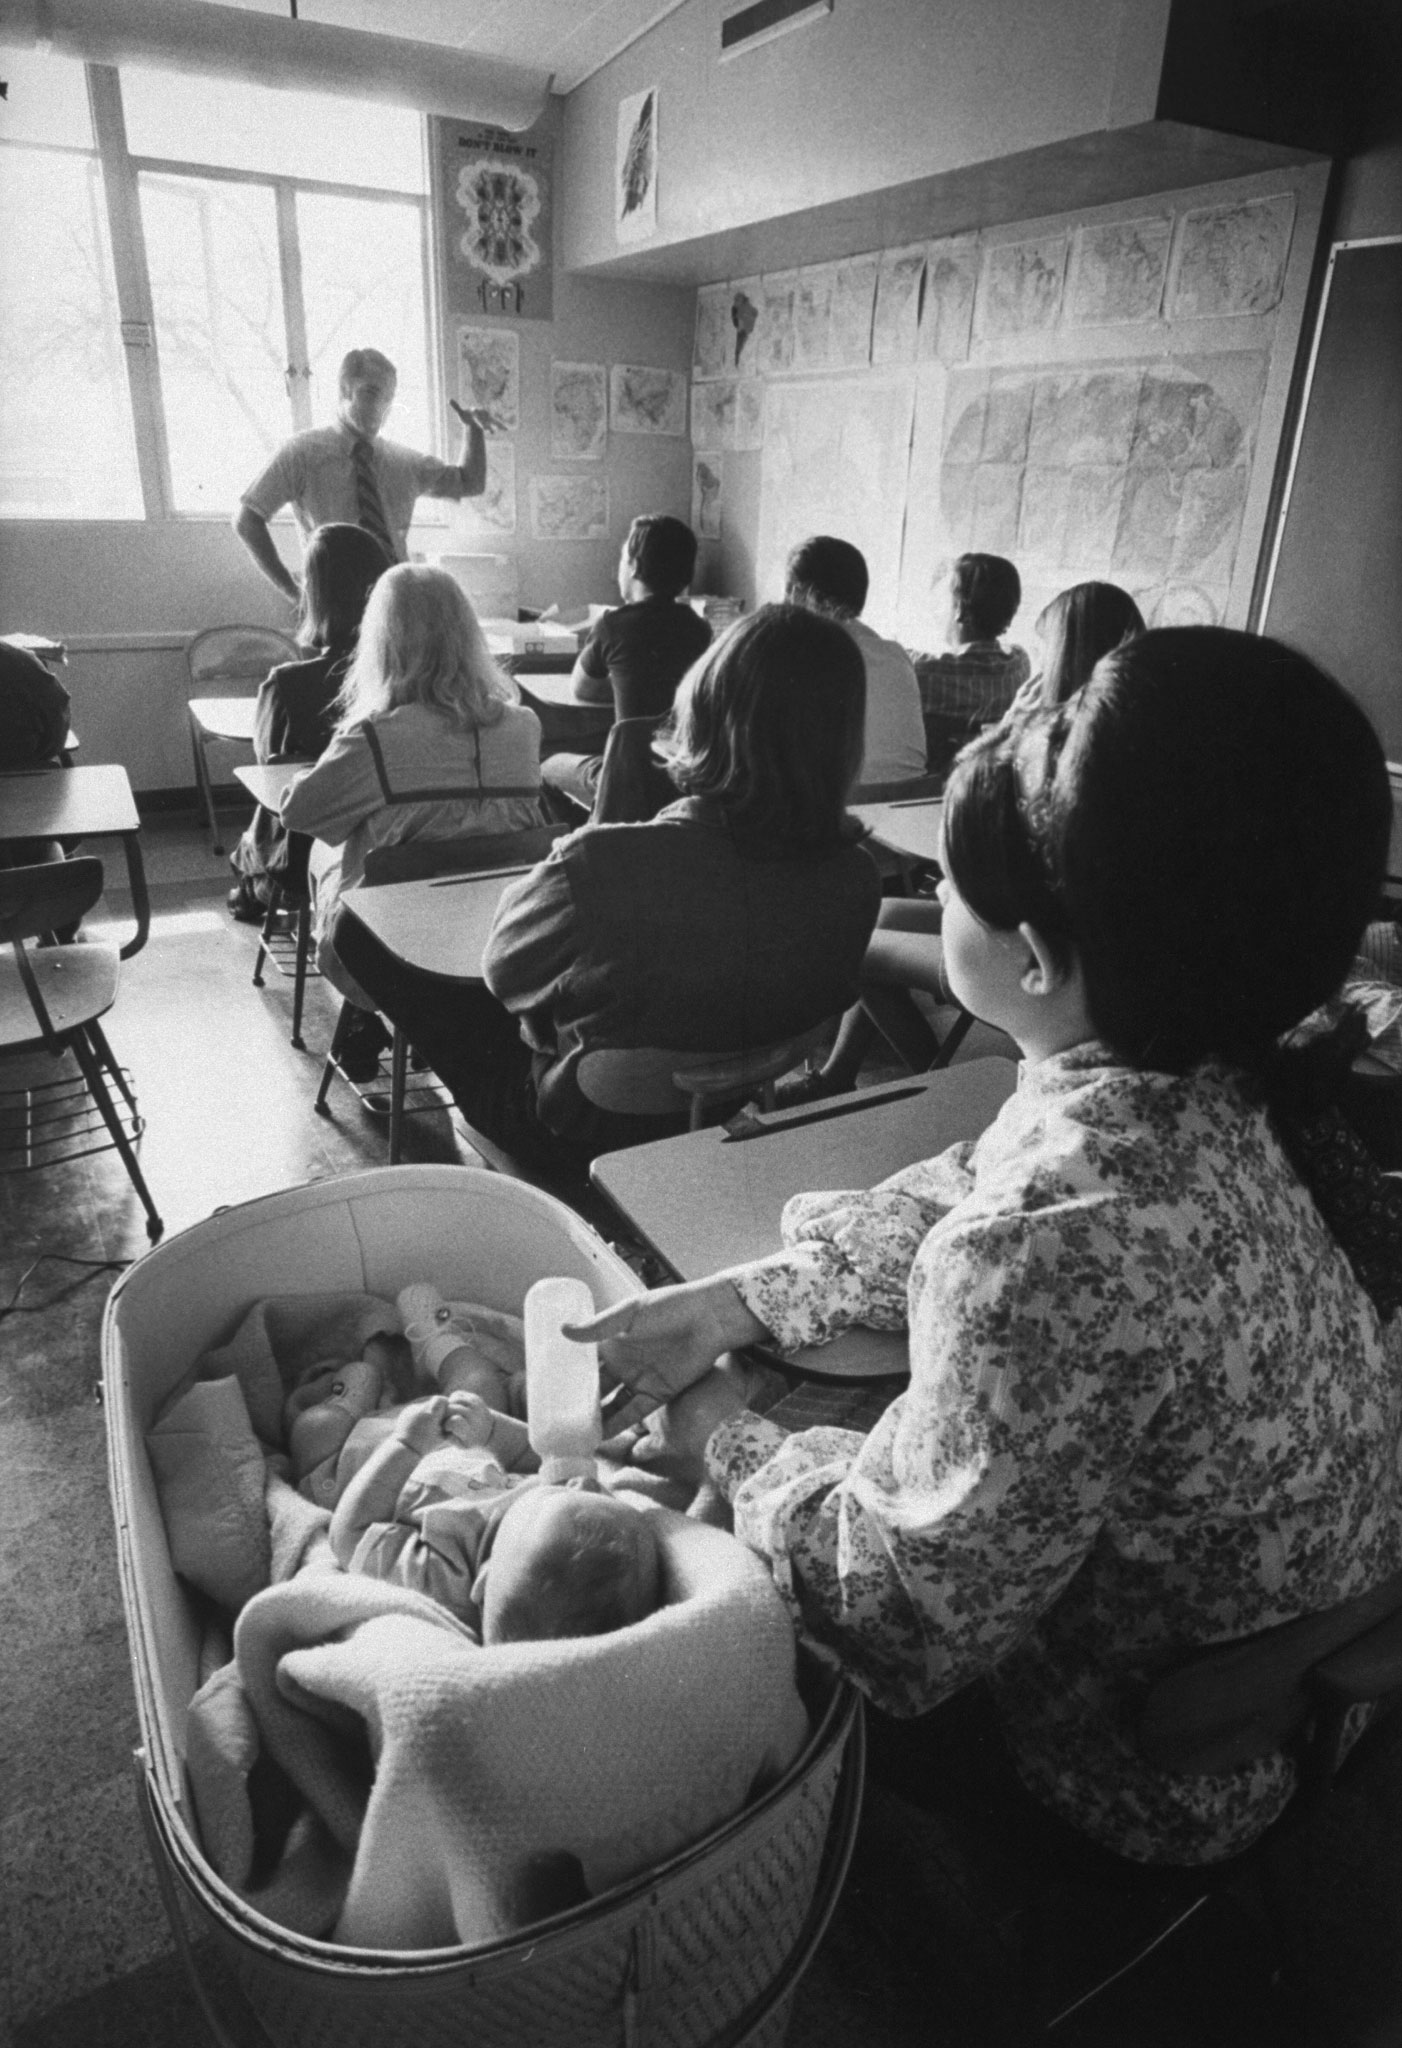 <b>Caption from LIFE.</b> During a social studies class, Cheryl Gue, 17, quiets her son Michael with a bottle. Although the sound of crying babies is a normal disruption at Citrus, the more vocal ones are usually hustled out of class. The school is equipped with playpens, cribs and toys. The mothers are required to come to school for the morning child-care courses, but may study academic subjects at home.